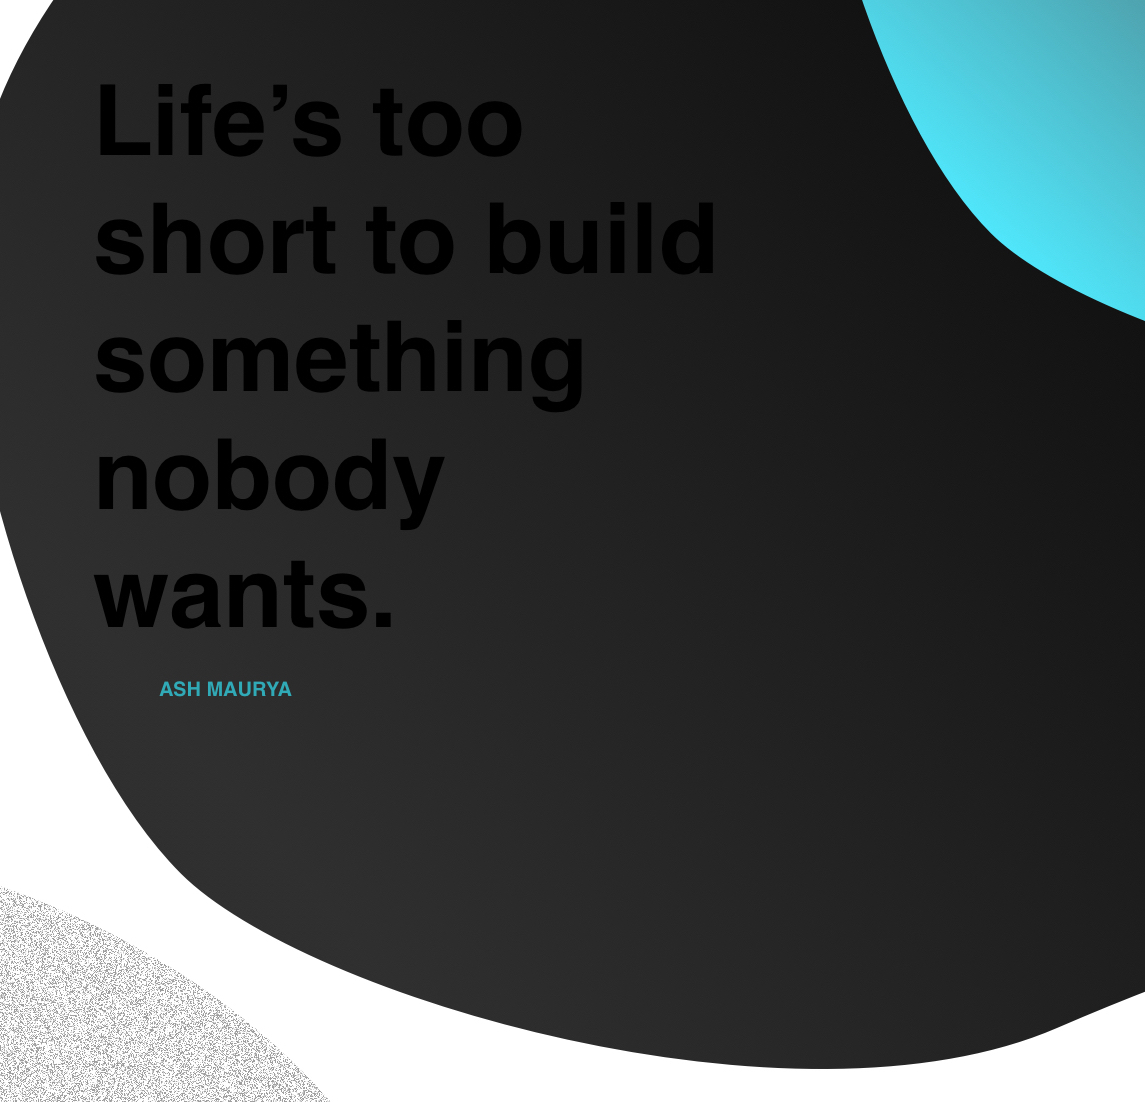 """Life's too short to build something nobody wants."" - Ash Maurya"